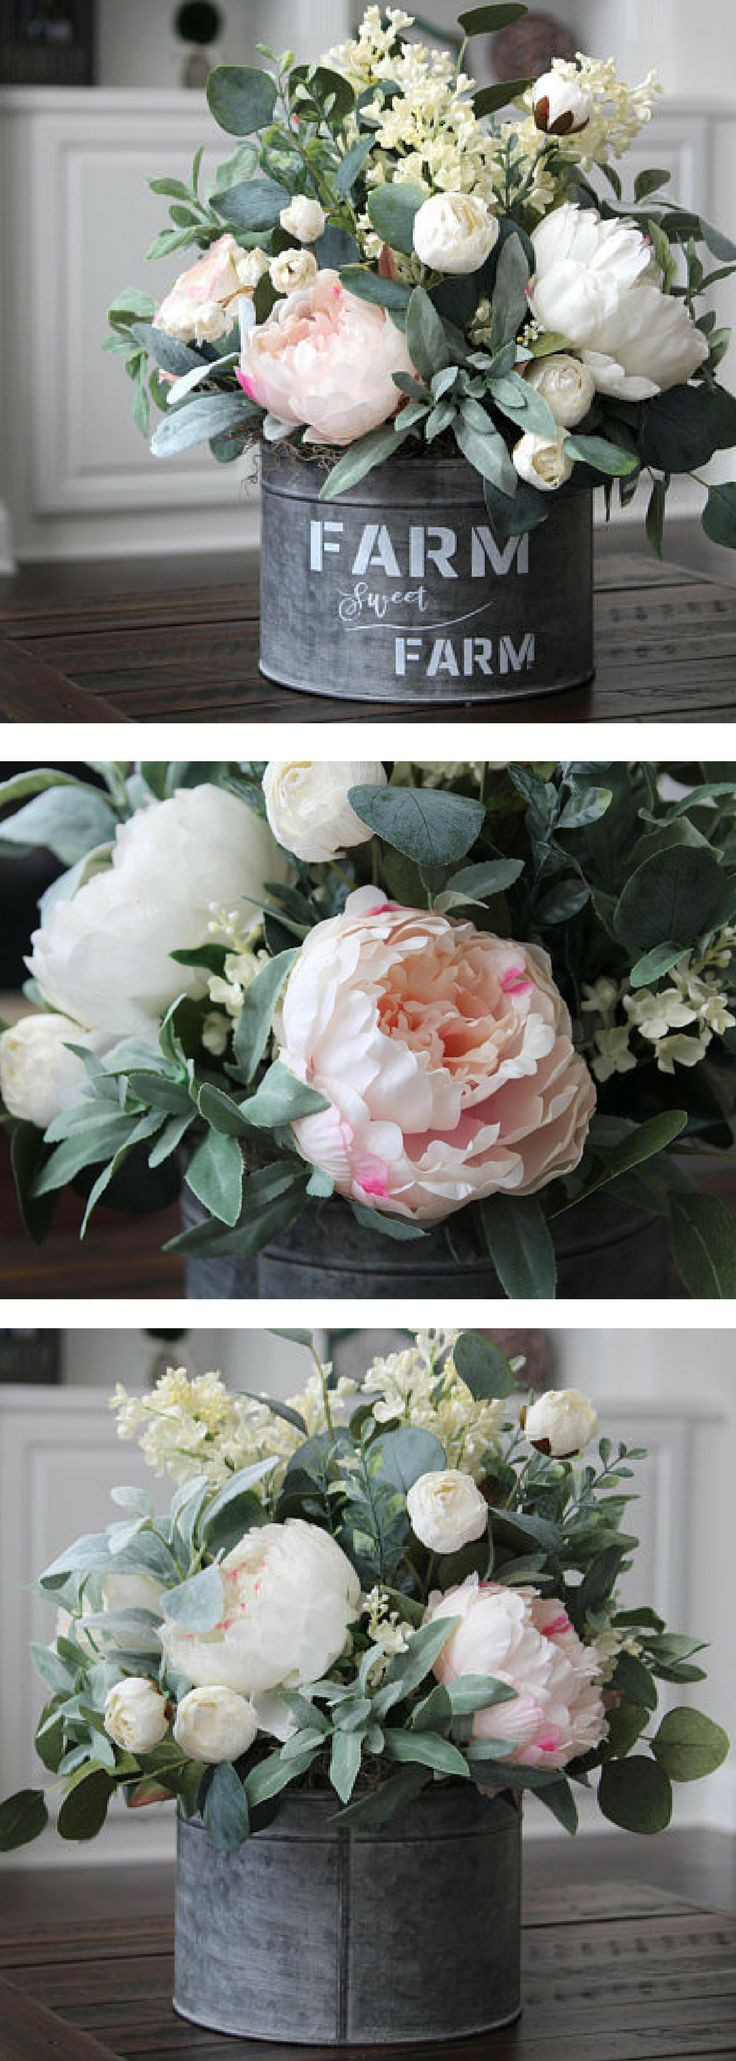 best vase for peonies of 735 best aint they beautiful he said images on pinterest inside find this pin and more on aint they beautiful he said by kaija jackson